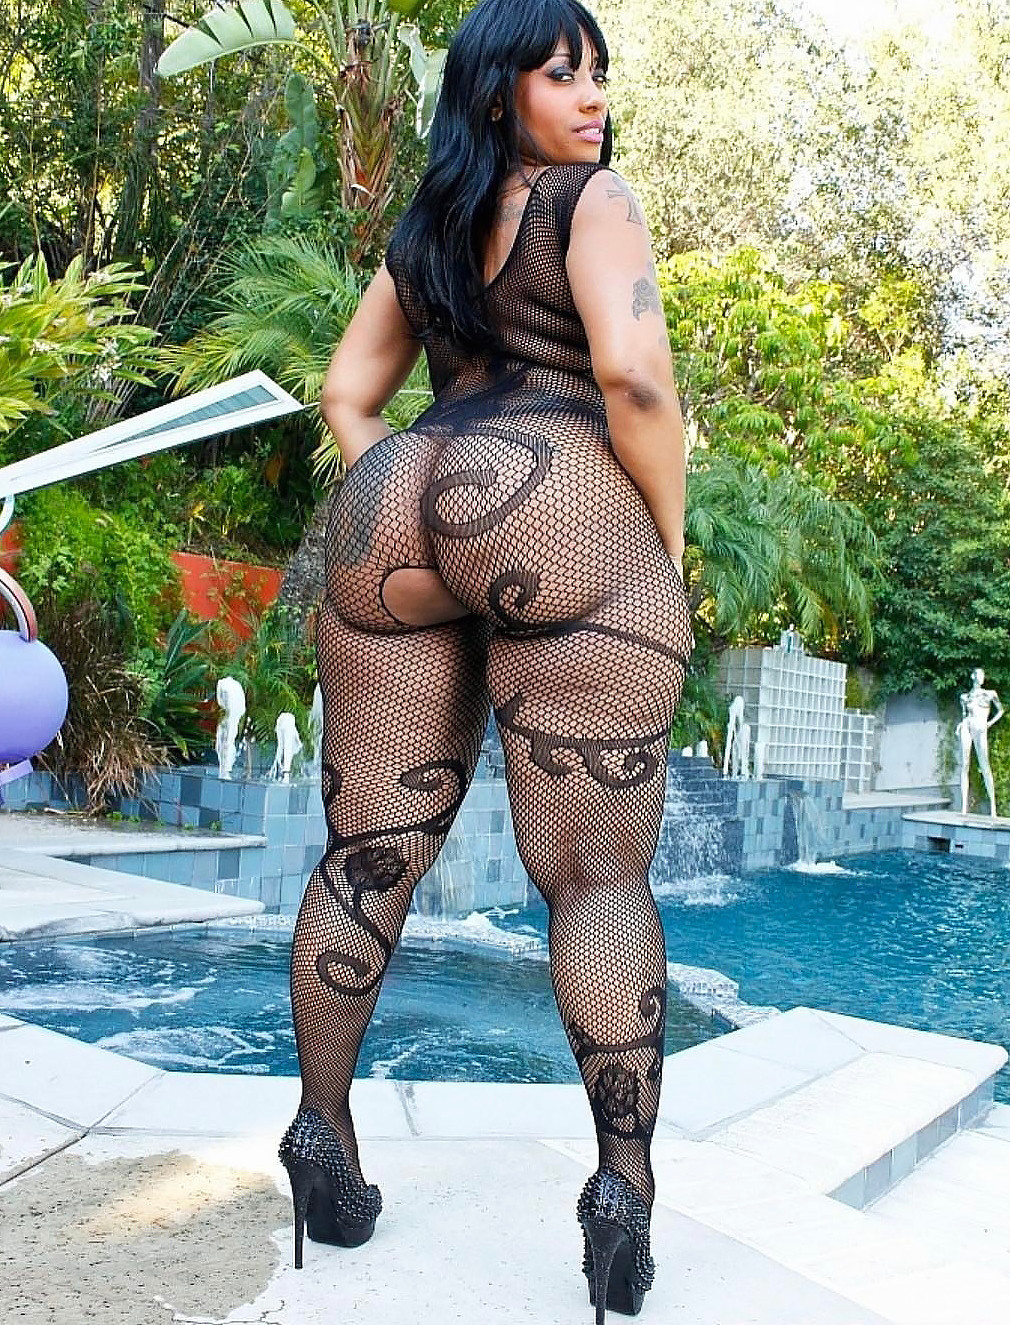 Kyros christian gay porn sexy black widow  black free ebony big boobs black